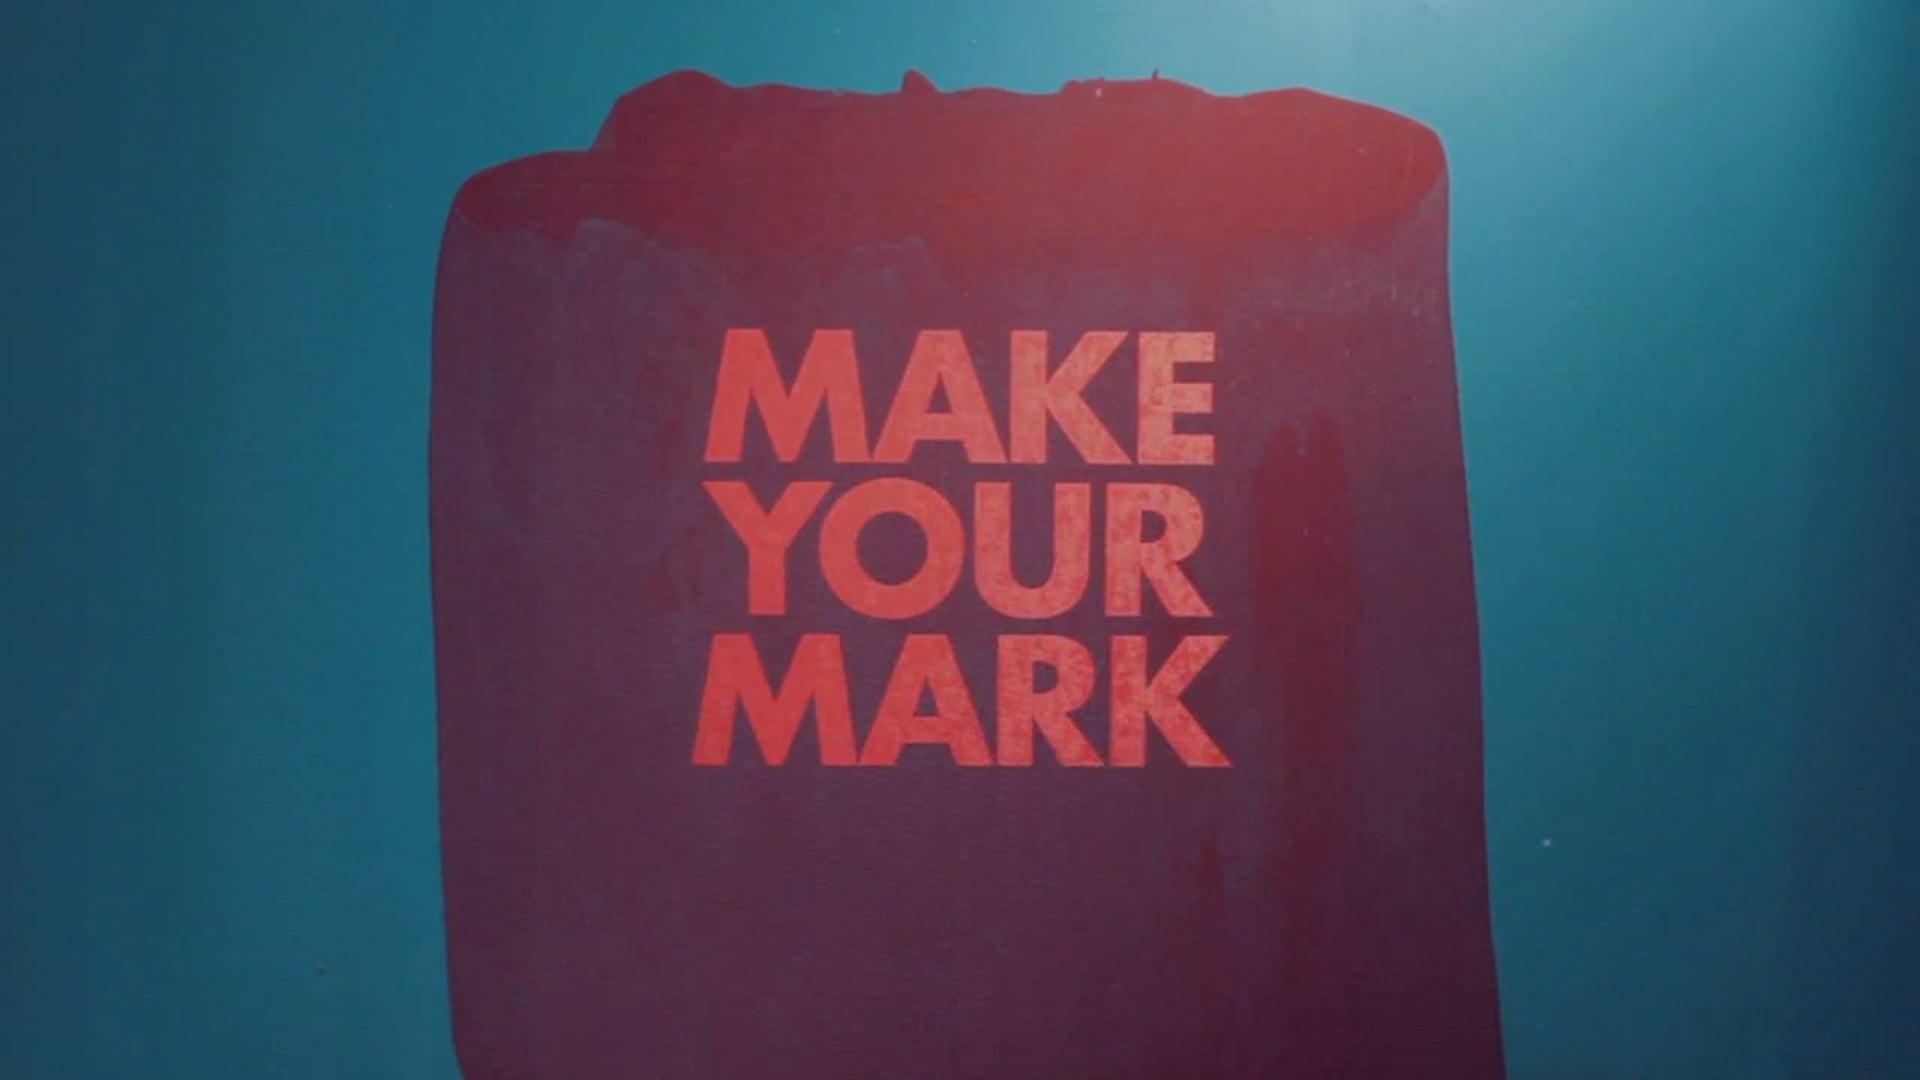 Plymouth Univeristy - Make Your Mark